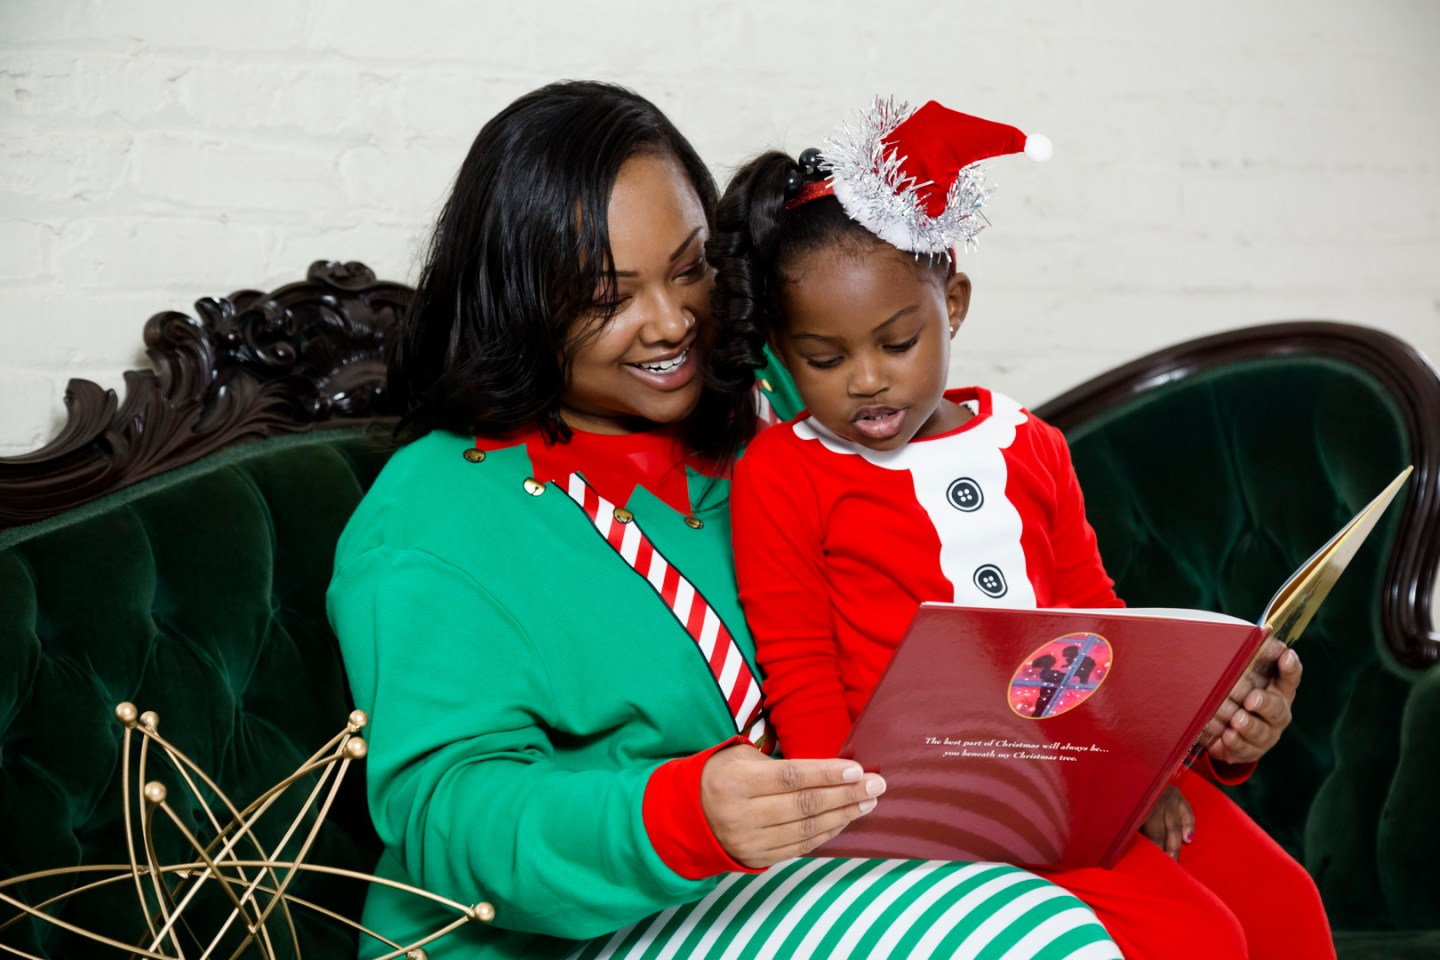 uk2723tu5mp1cegmm702_big Mommy & Me Christmas PJ Session in Greensboro, NC